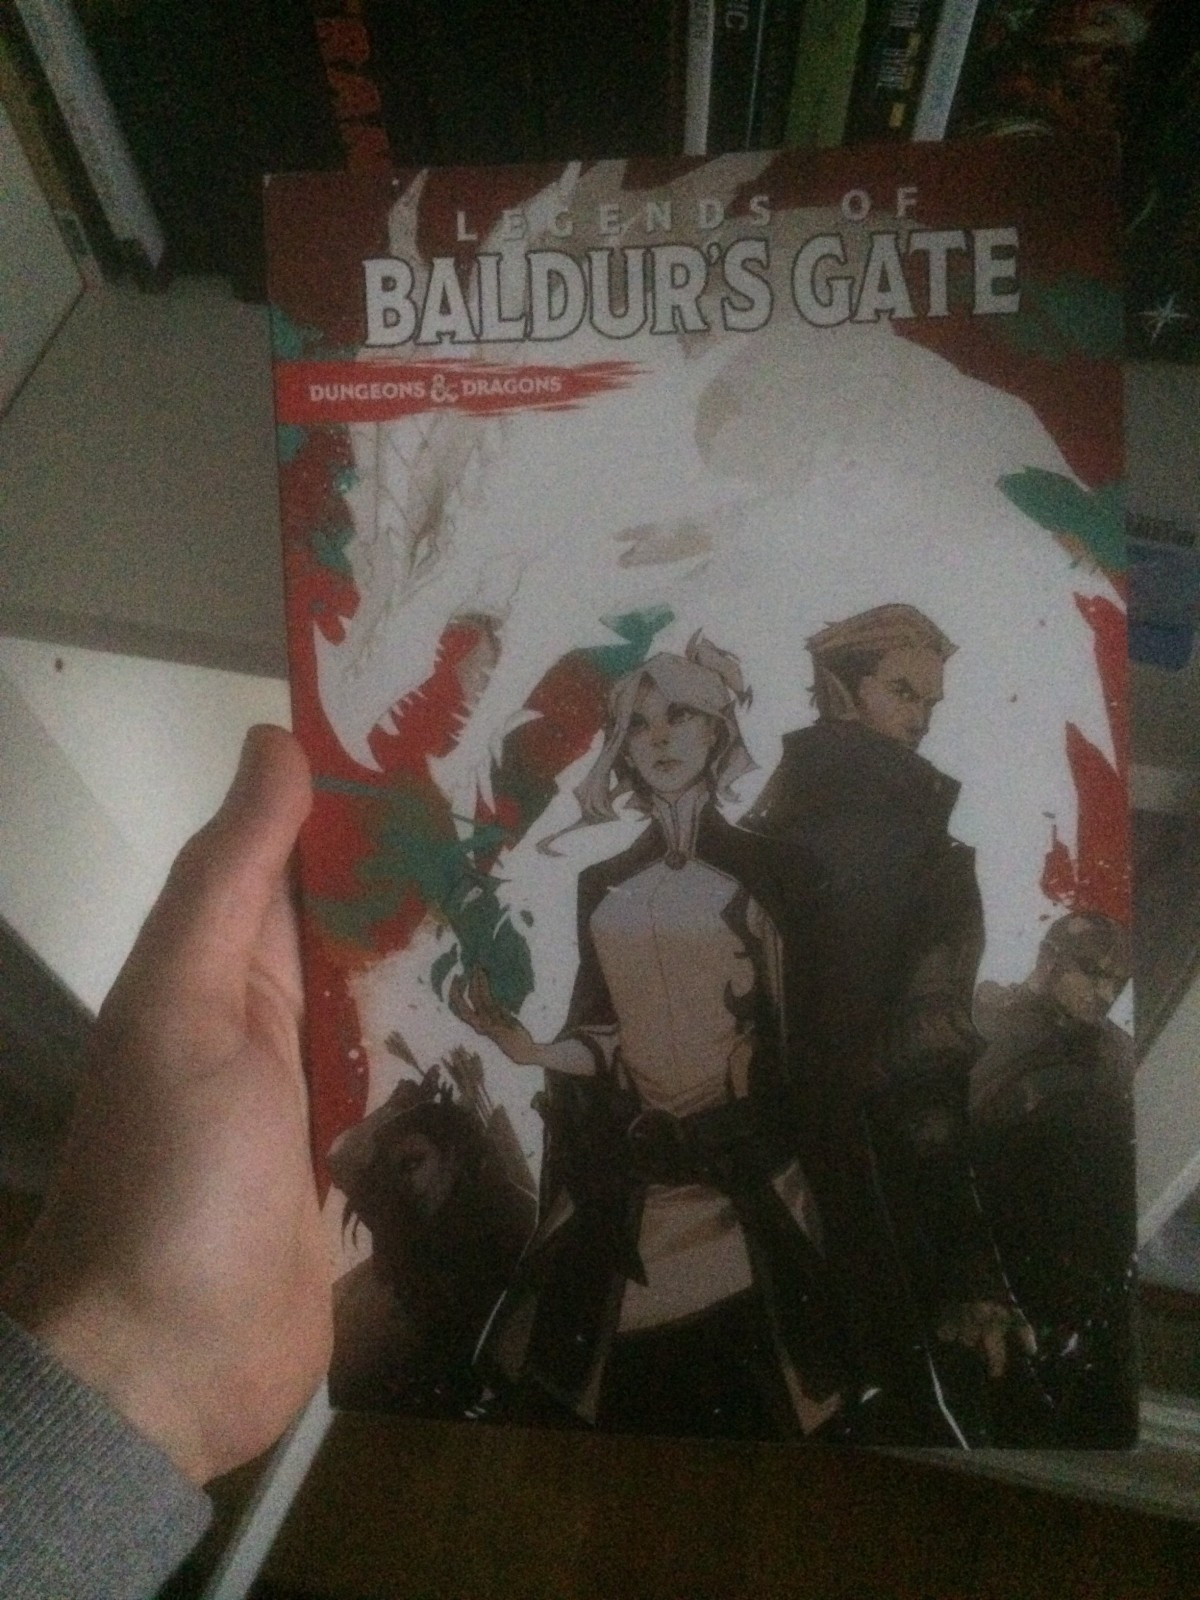 Dungeons & Dragons: Legends of Baldur's Gate (Comic Book Review)